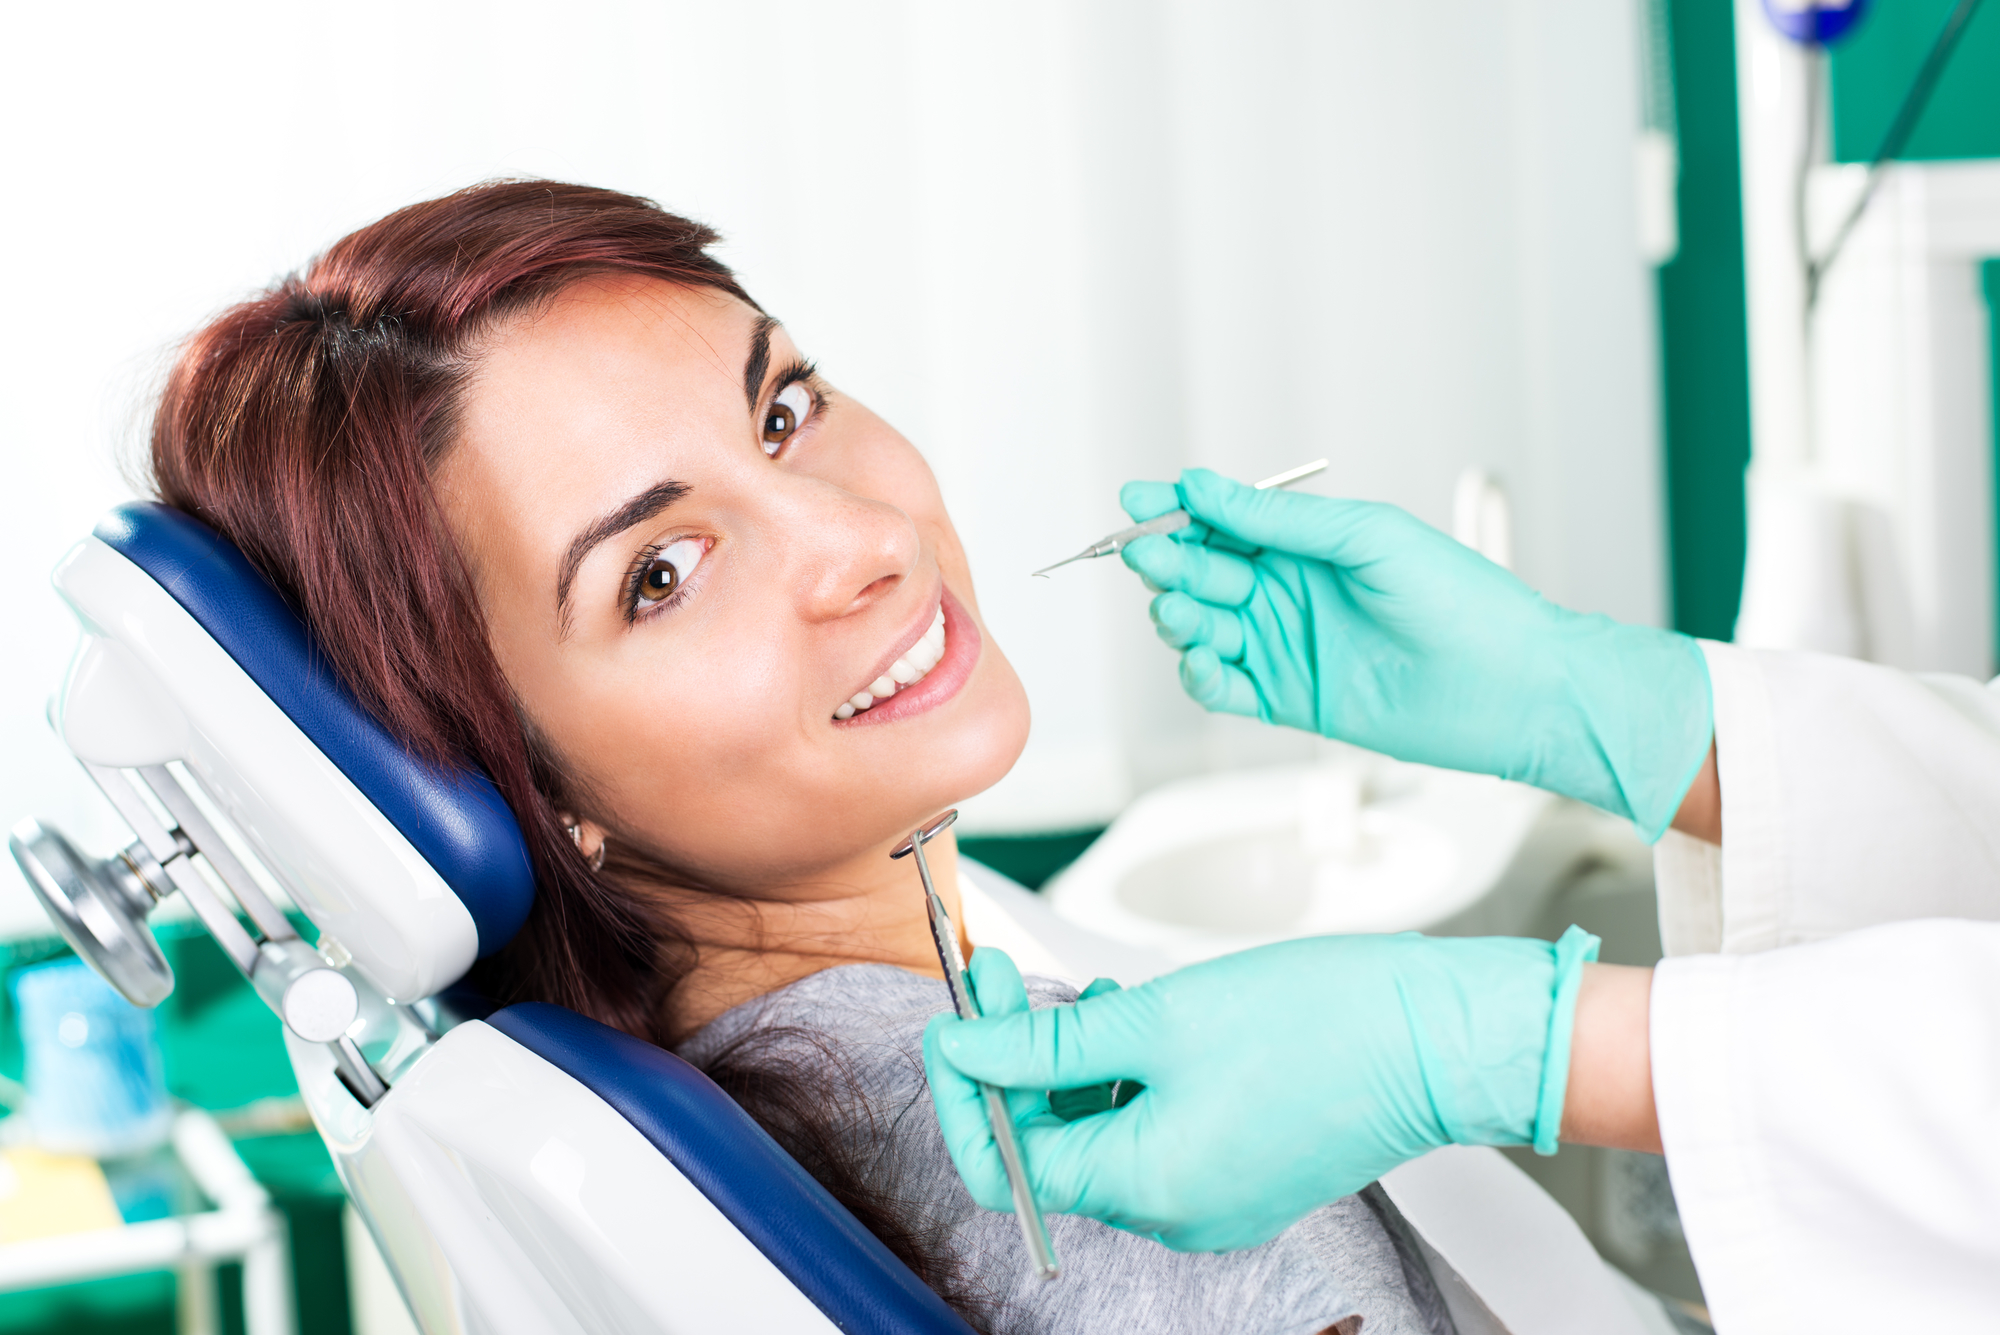 who offers oral surgery pembroke pines?